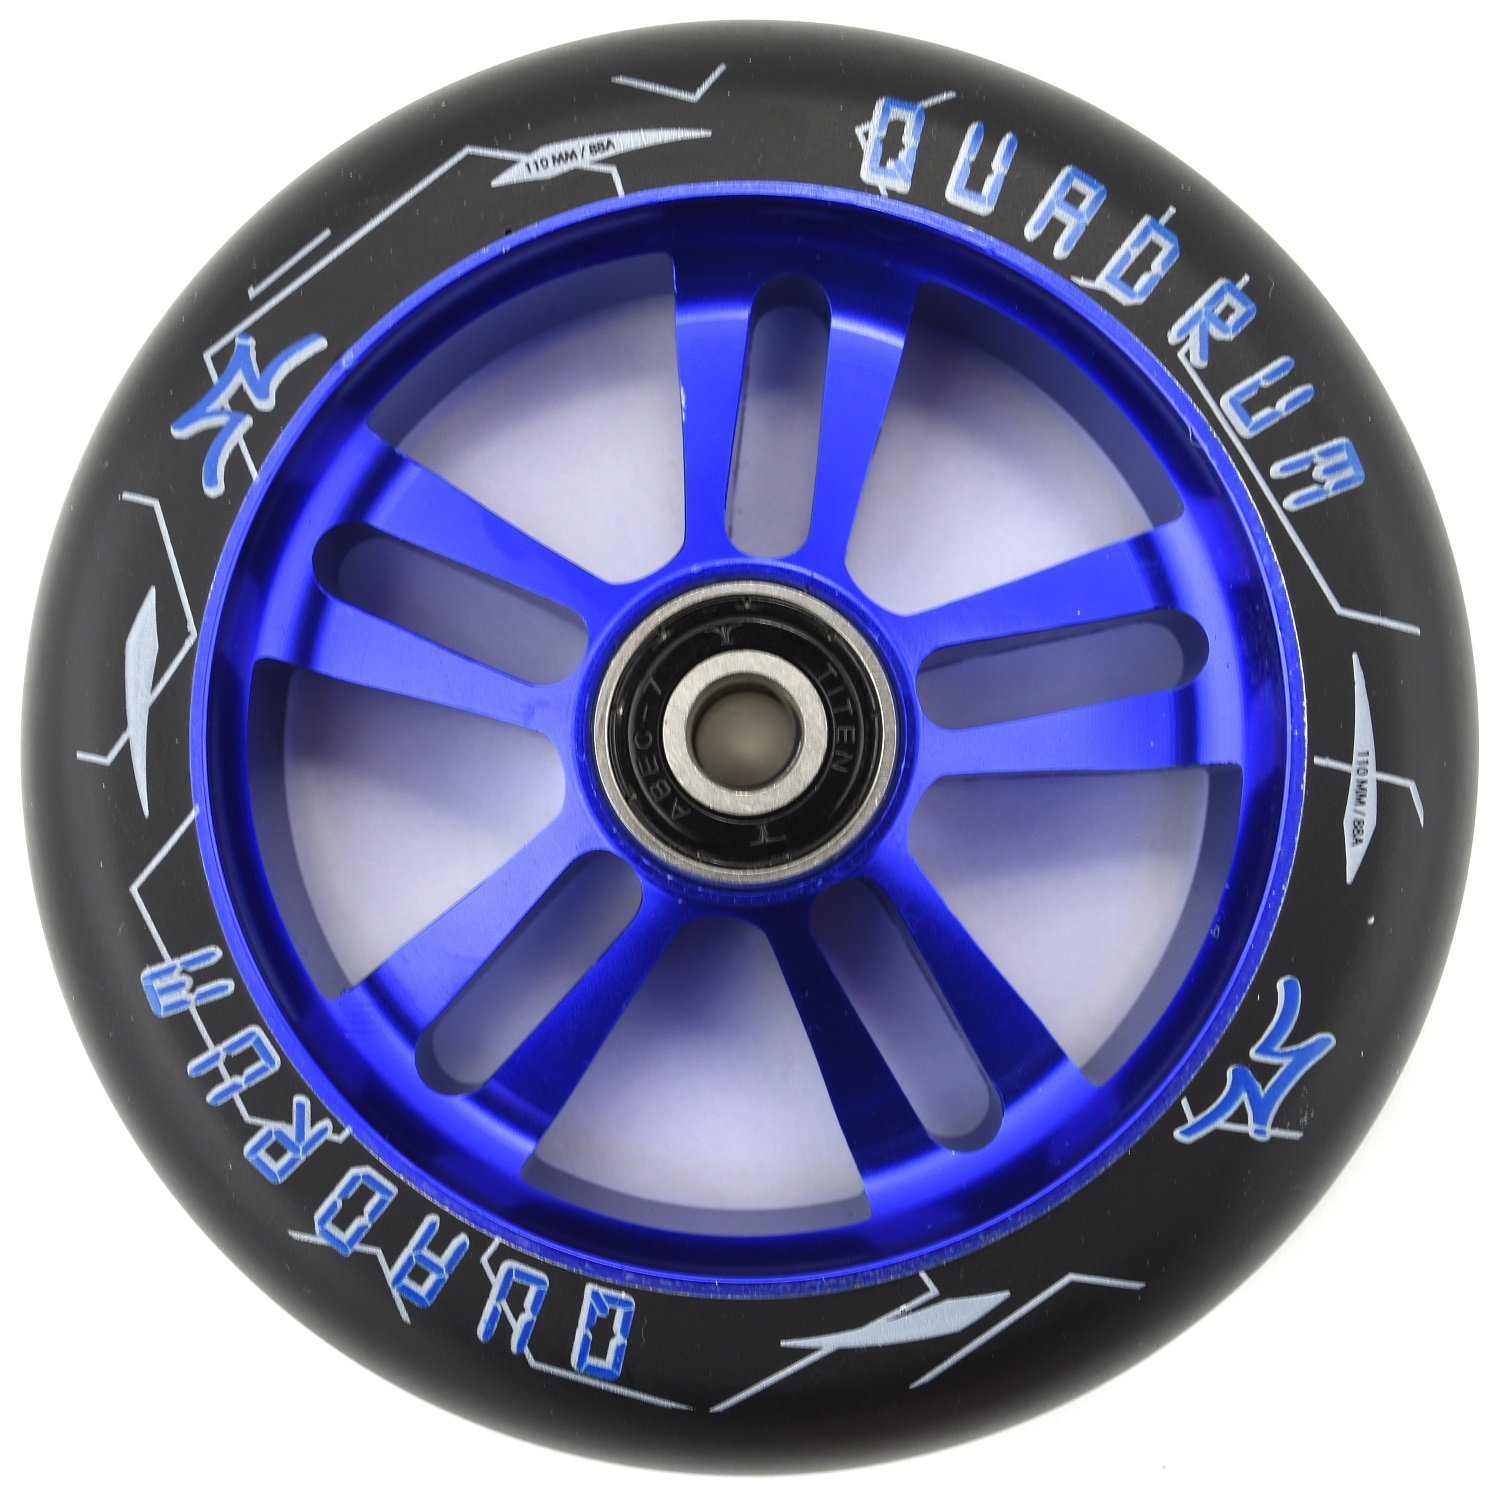 AO QUADRUM 10 de Star Patinete de 110 mm Rollo + Fan tic26 ...